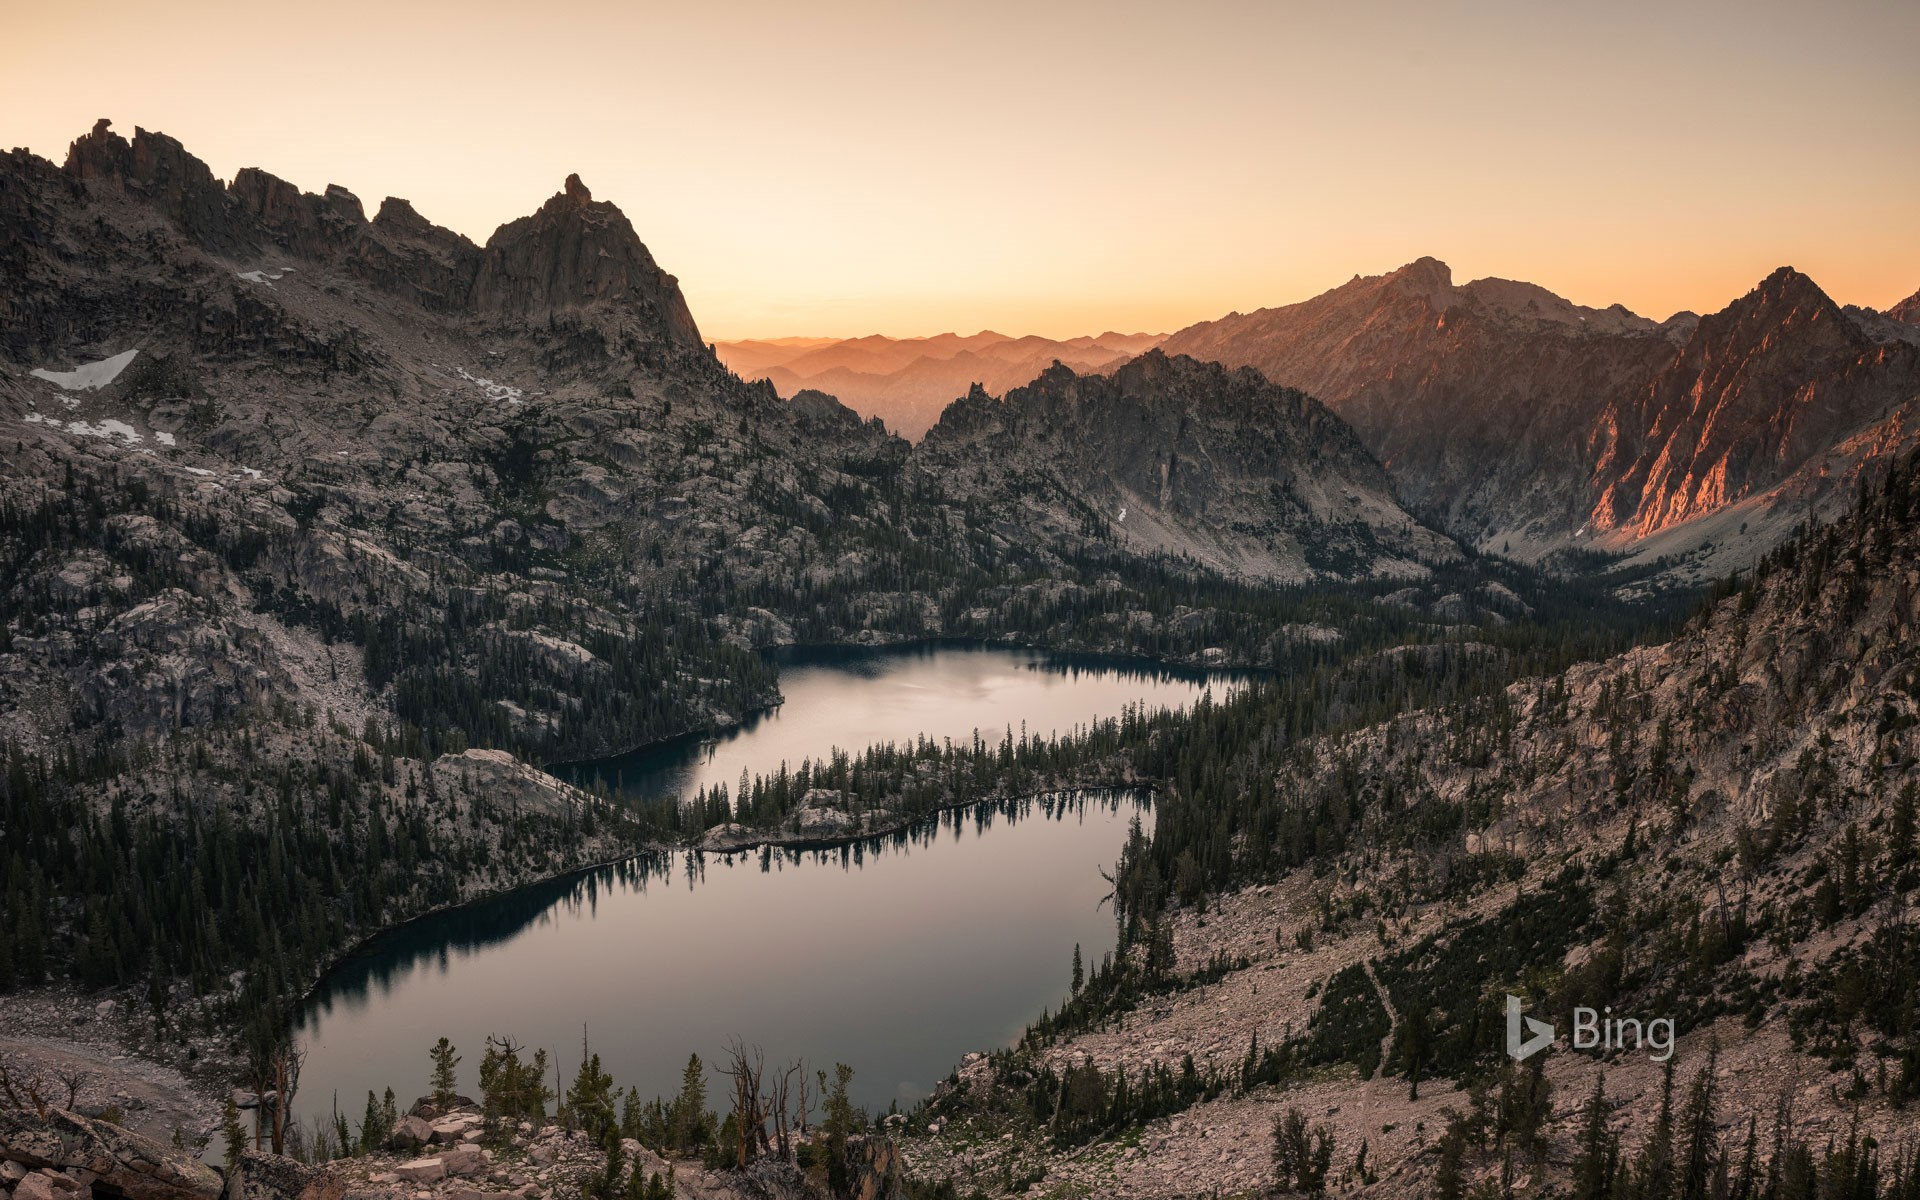 Baron Lake and Upper Baron Lake in the Sawtooth Wilderness in Idaho